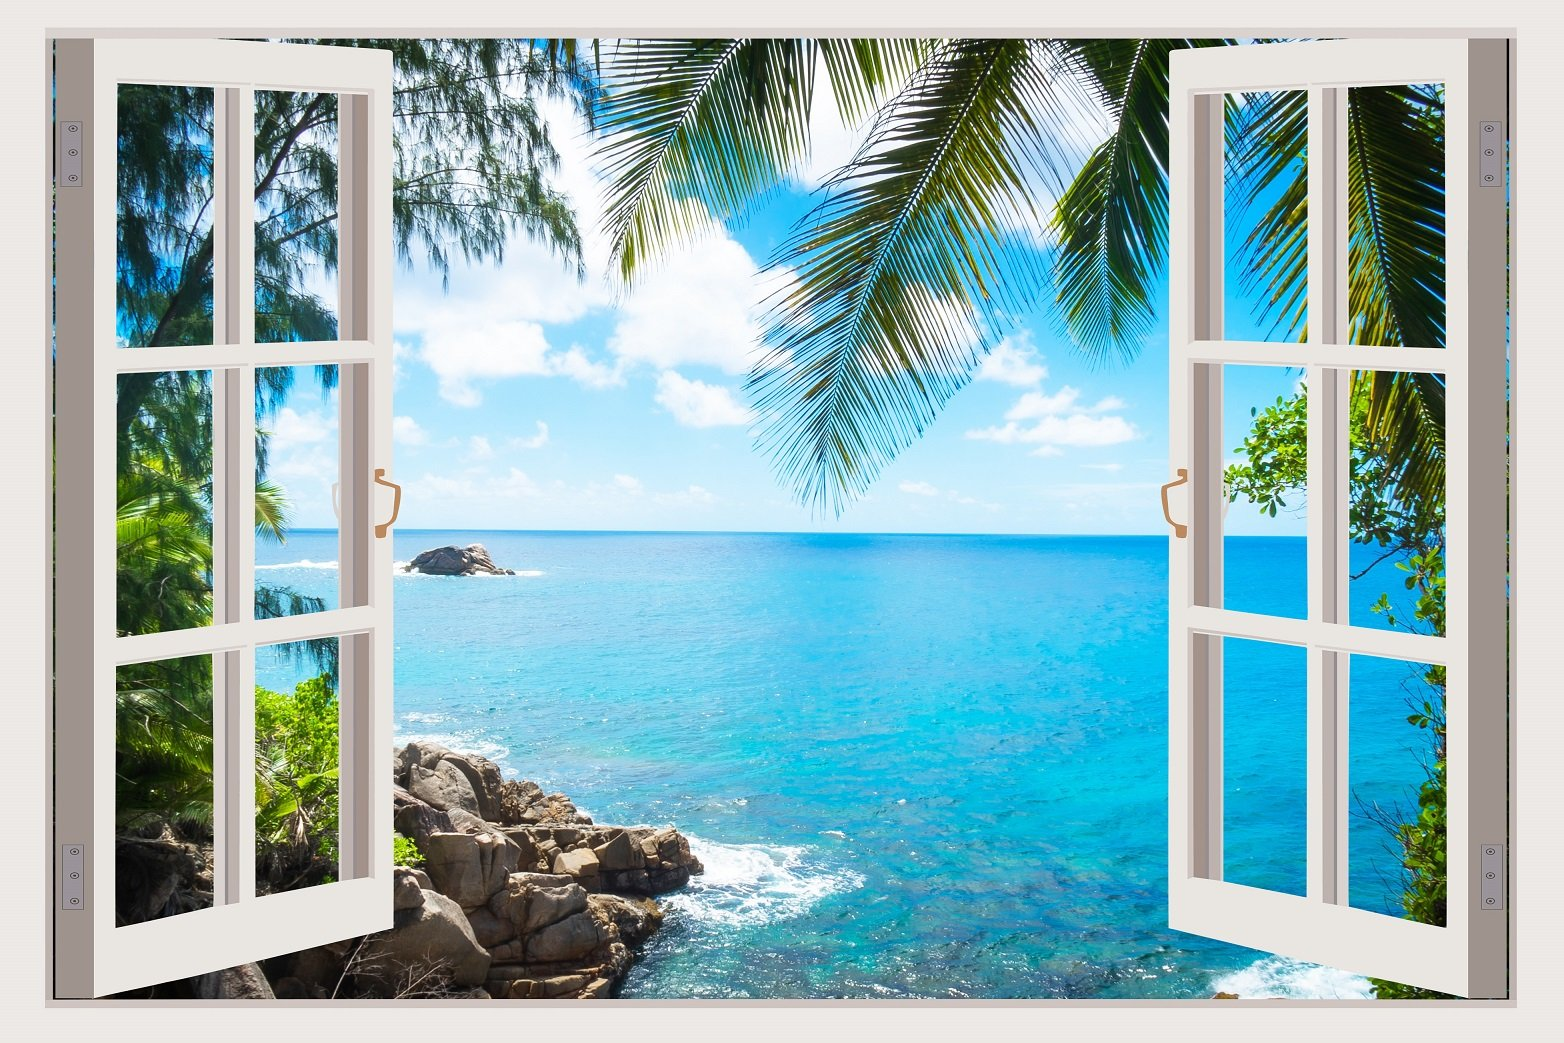 3D Removable Vinyl Wall Mural Stickers By Mi Alma Window Frame Design – Wide Variety Of Realistic Views – Easy To Apply Peel & Stick – Incomparably Durable Wall Decals (33.5x45 Inch, Palm Tree View)